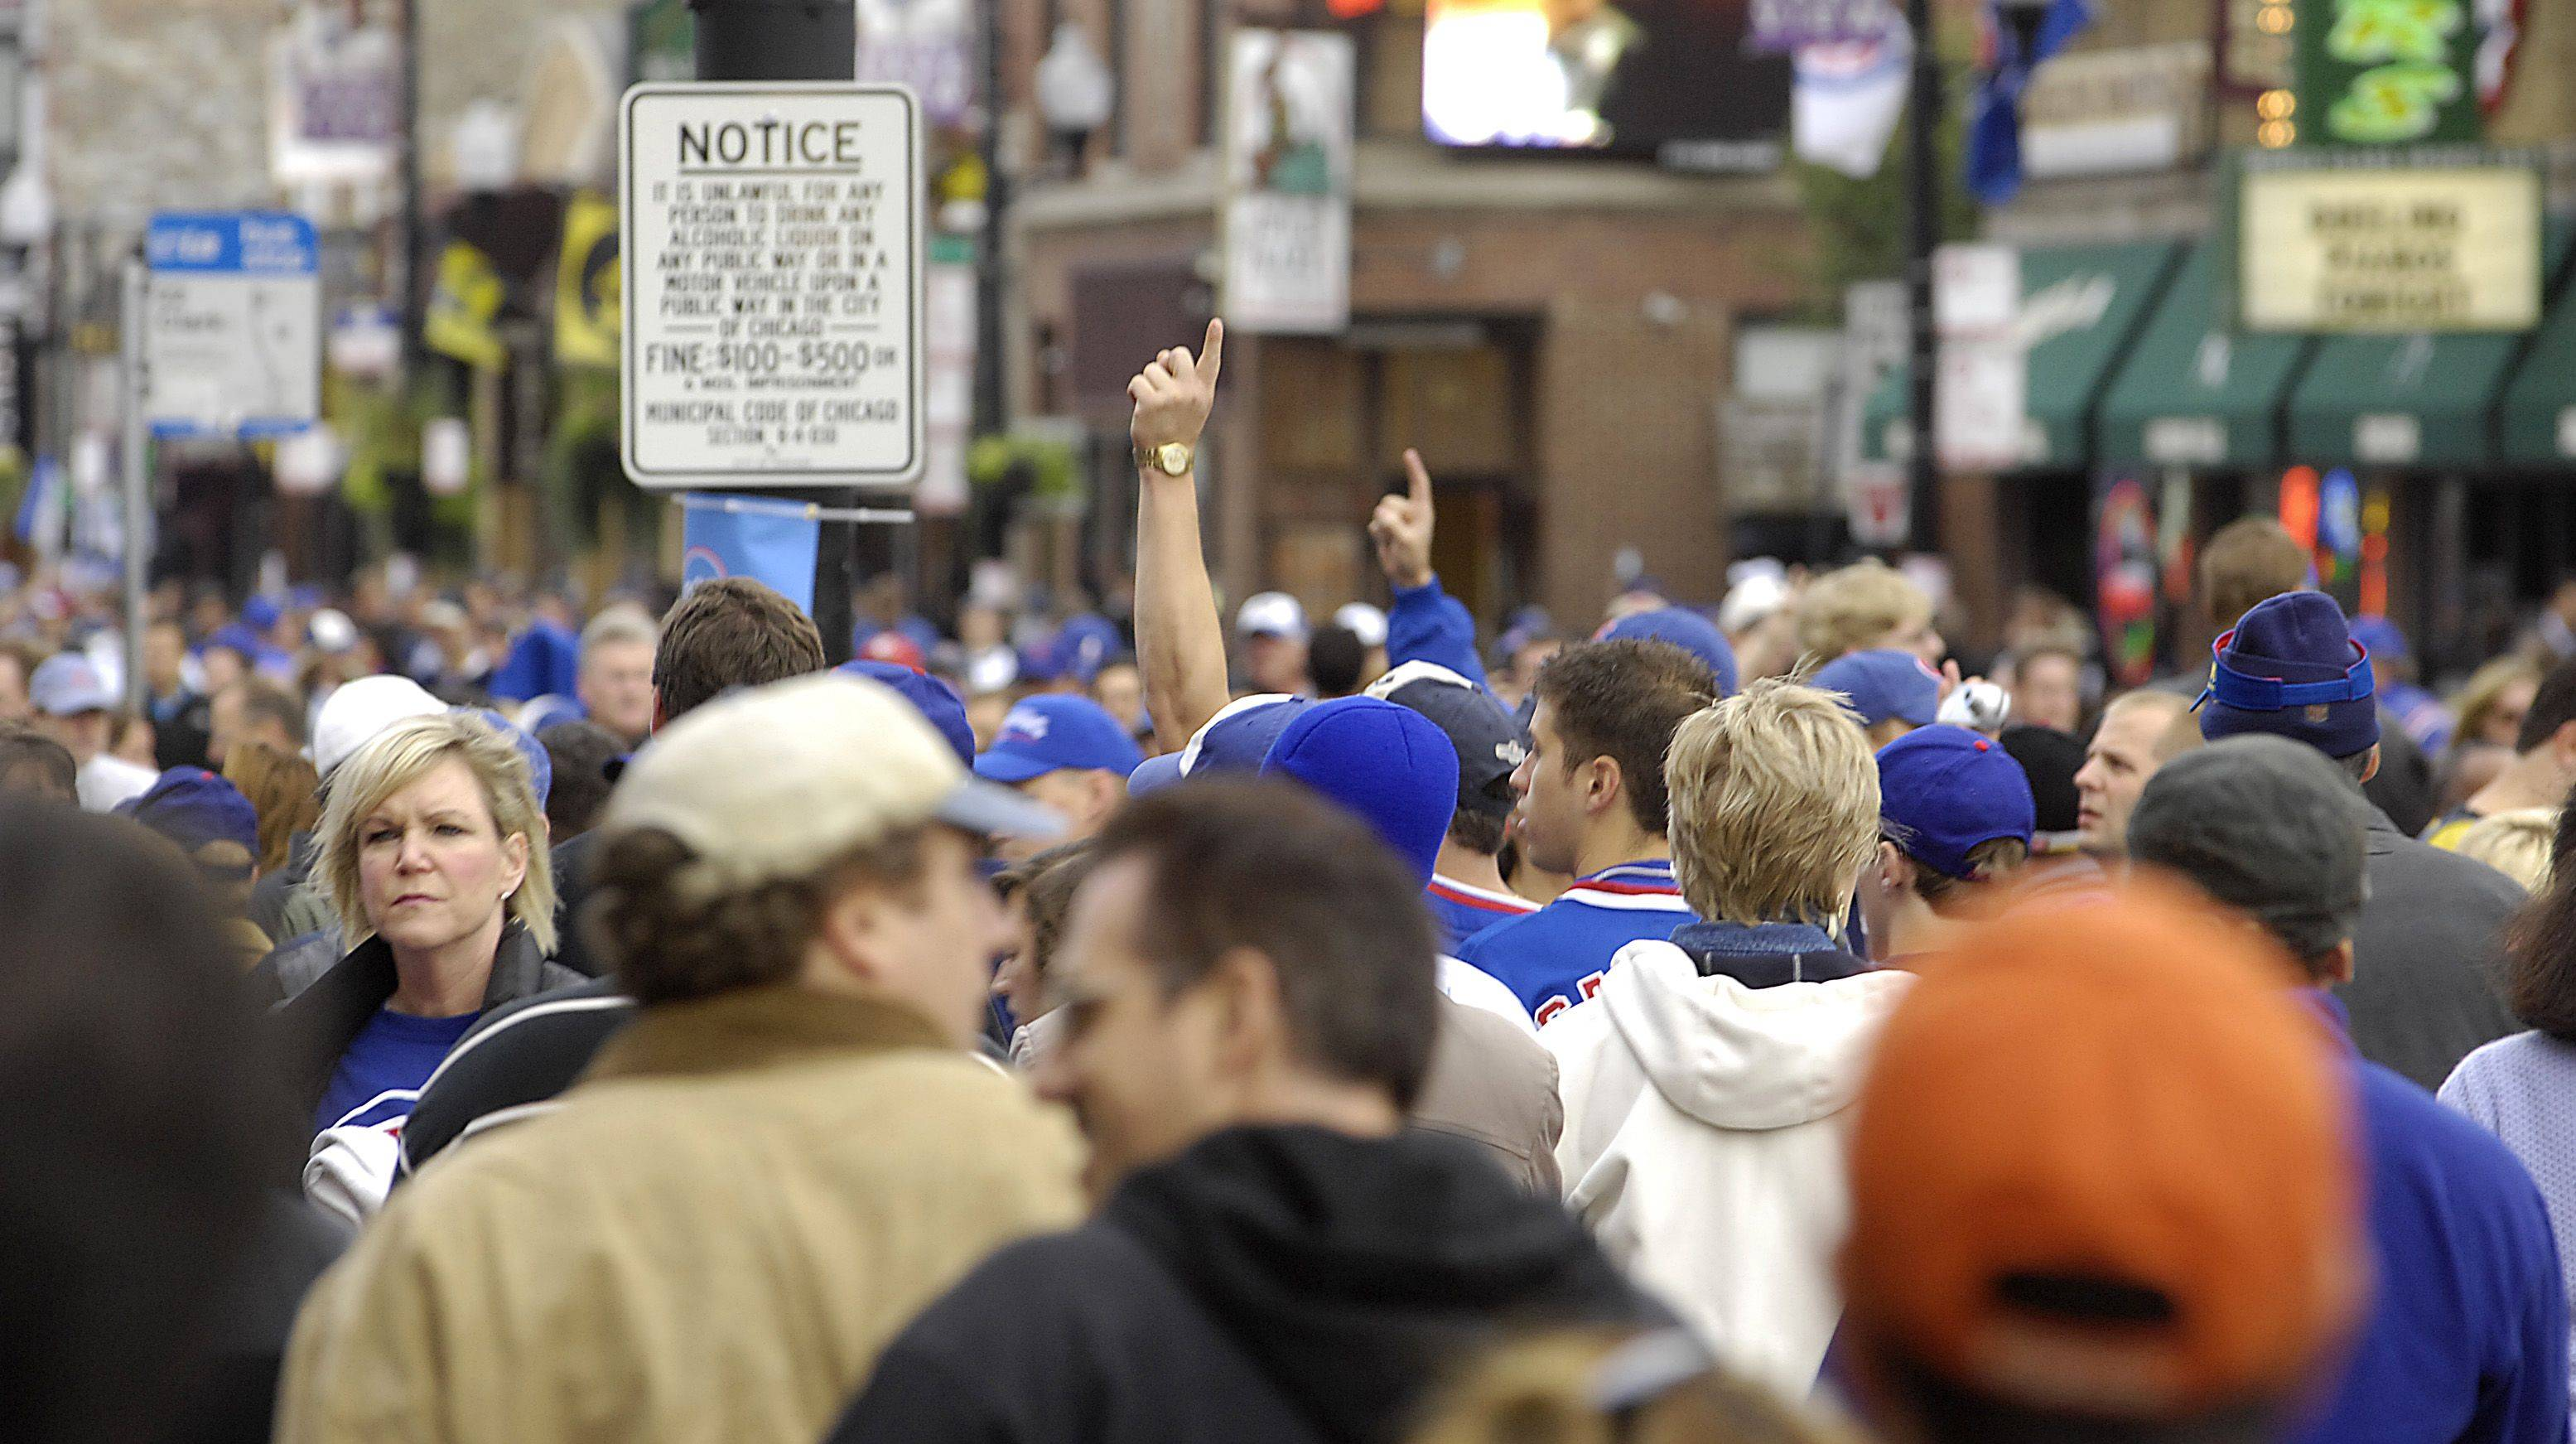 Fans just aren't willing to pay anything to see a Cubs game, or so it seems this year. Local ticket resale companies are reporting a historic decline in demand that not even the weekend series against the New York Yankees or next week's crosstown games with the White Sox at U.S. Cellular Field are helping to rebuild.